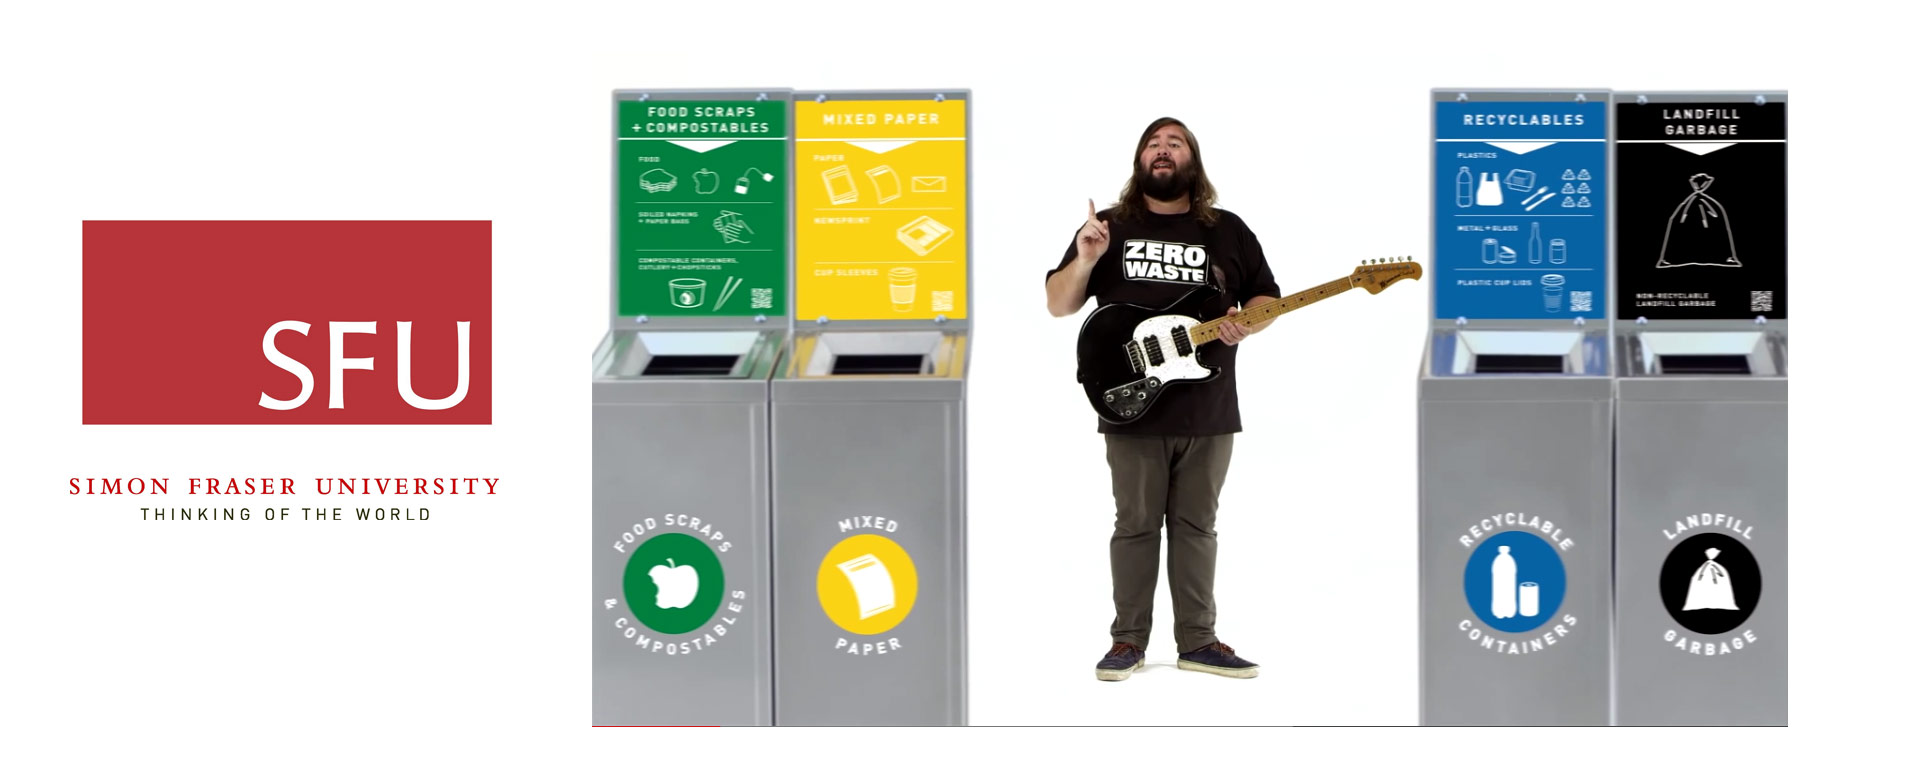 It's Time For Zero Waste at SFU